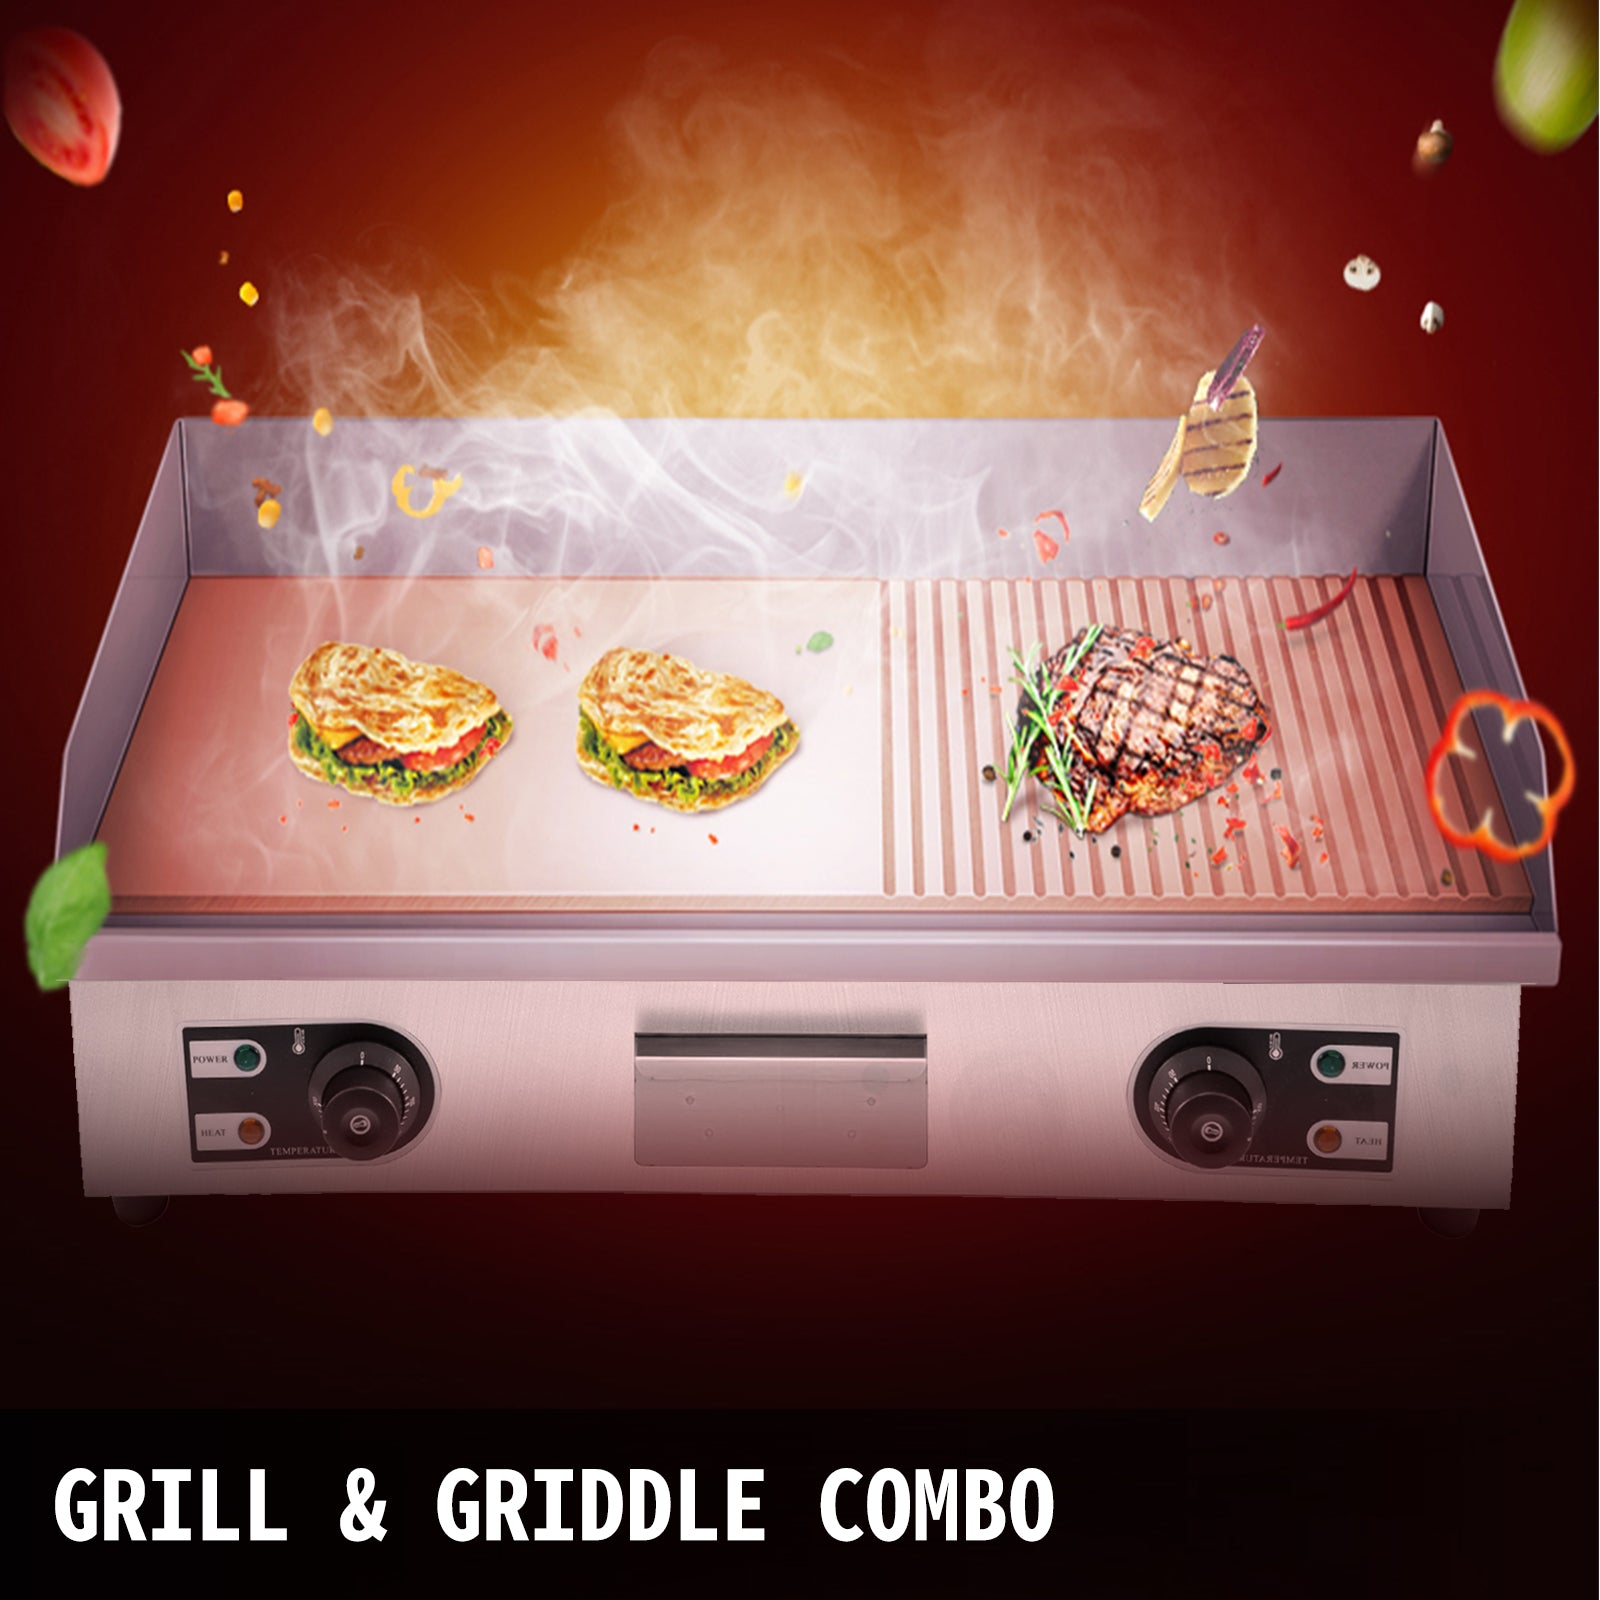 Electric Grill Grooved And Flat Top Grill Combo 30-inch Commercial Griddle Grill